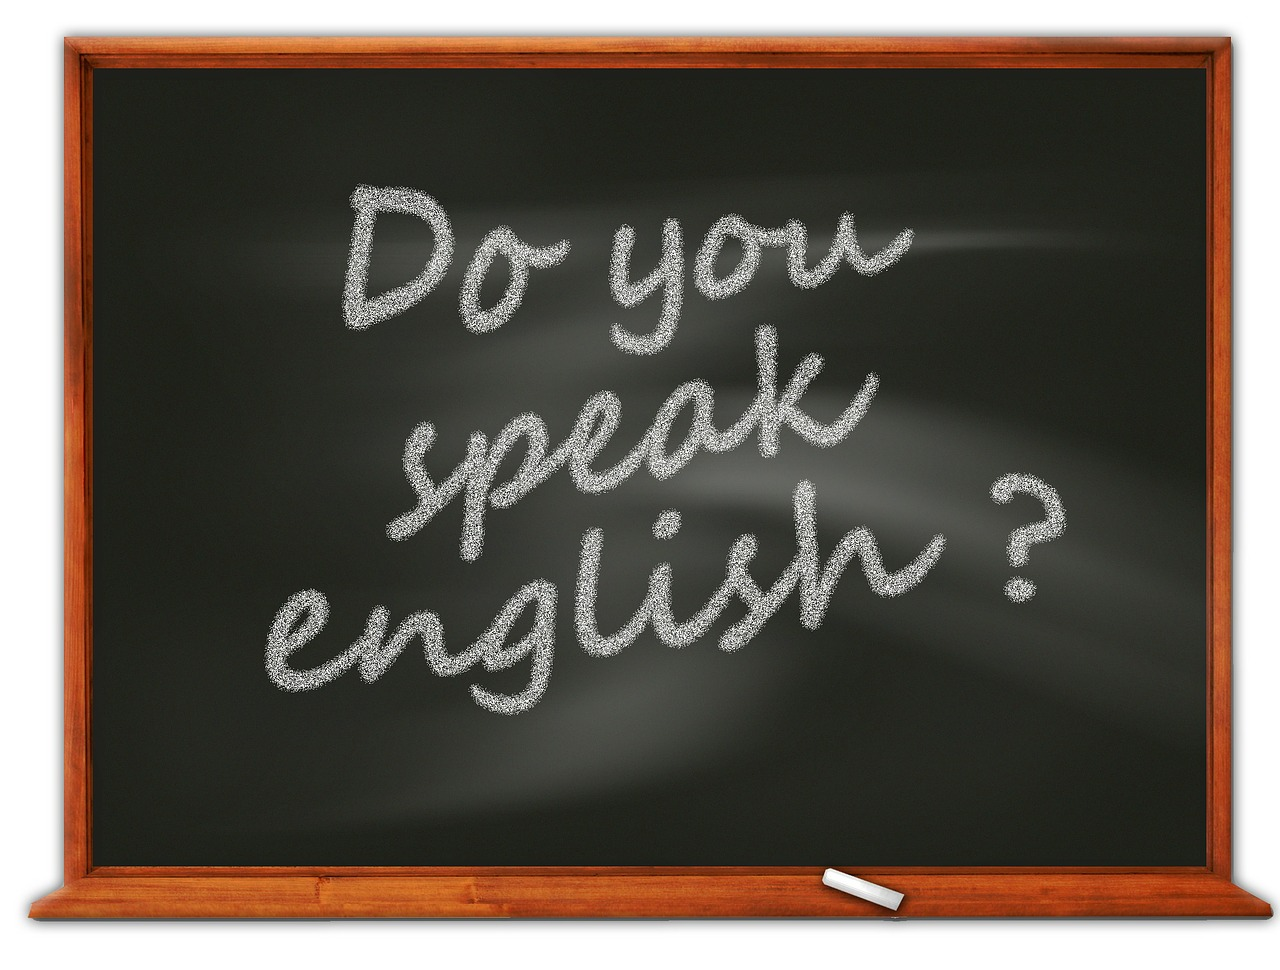 TOM SPIKE – Englischsprachige Website Geht Online